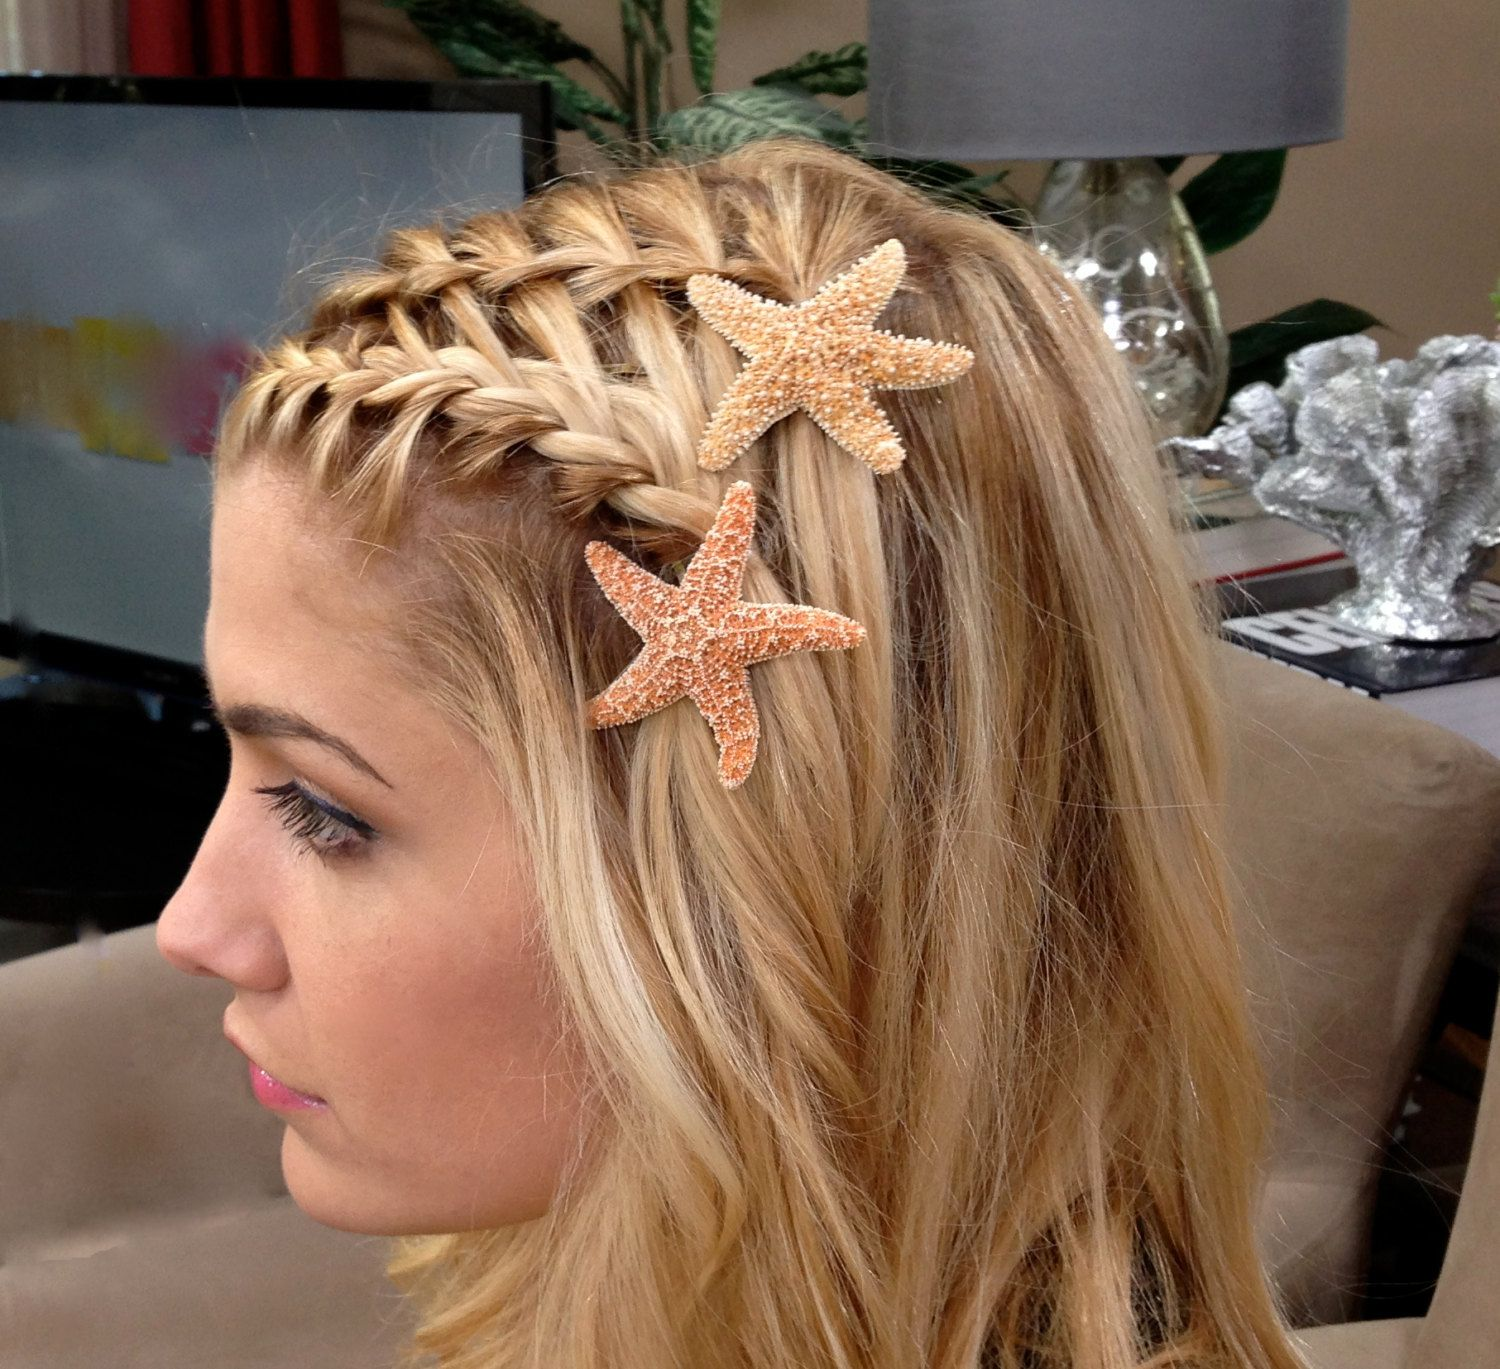 waterfall braided bangs with starfish hair hair and updos